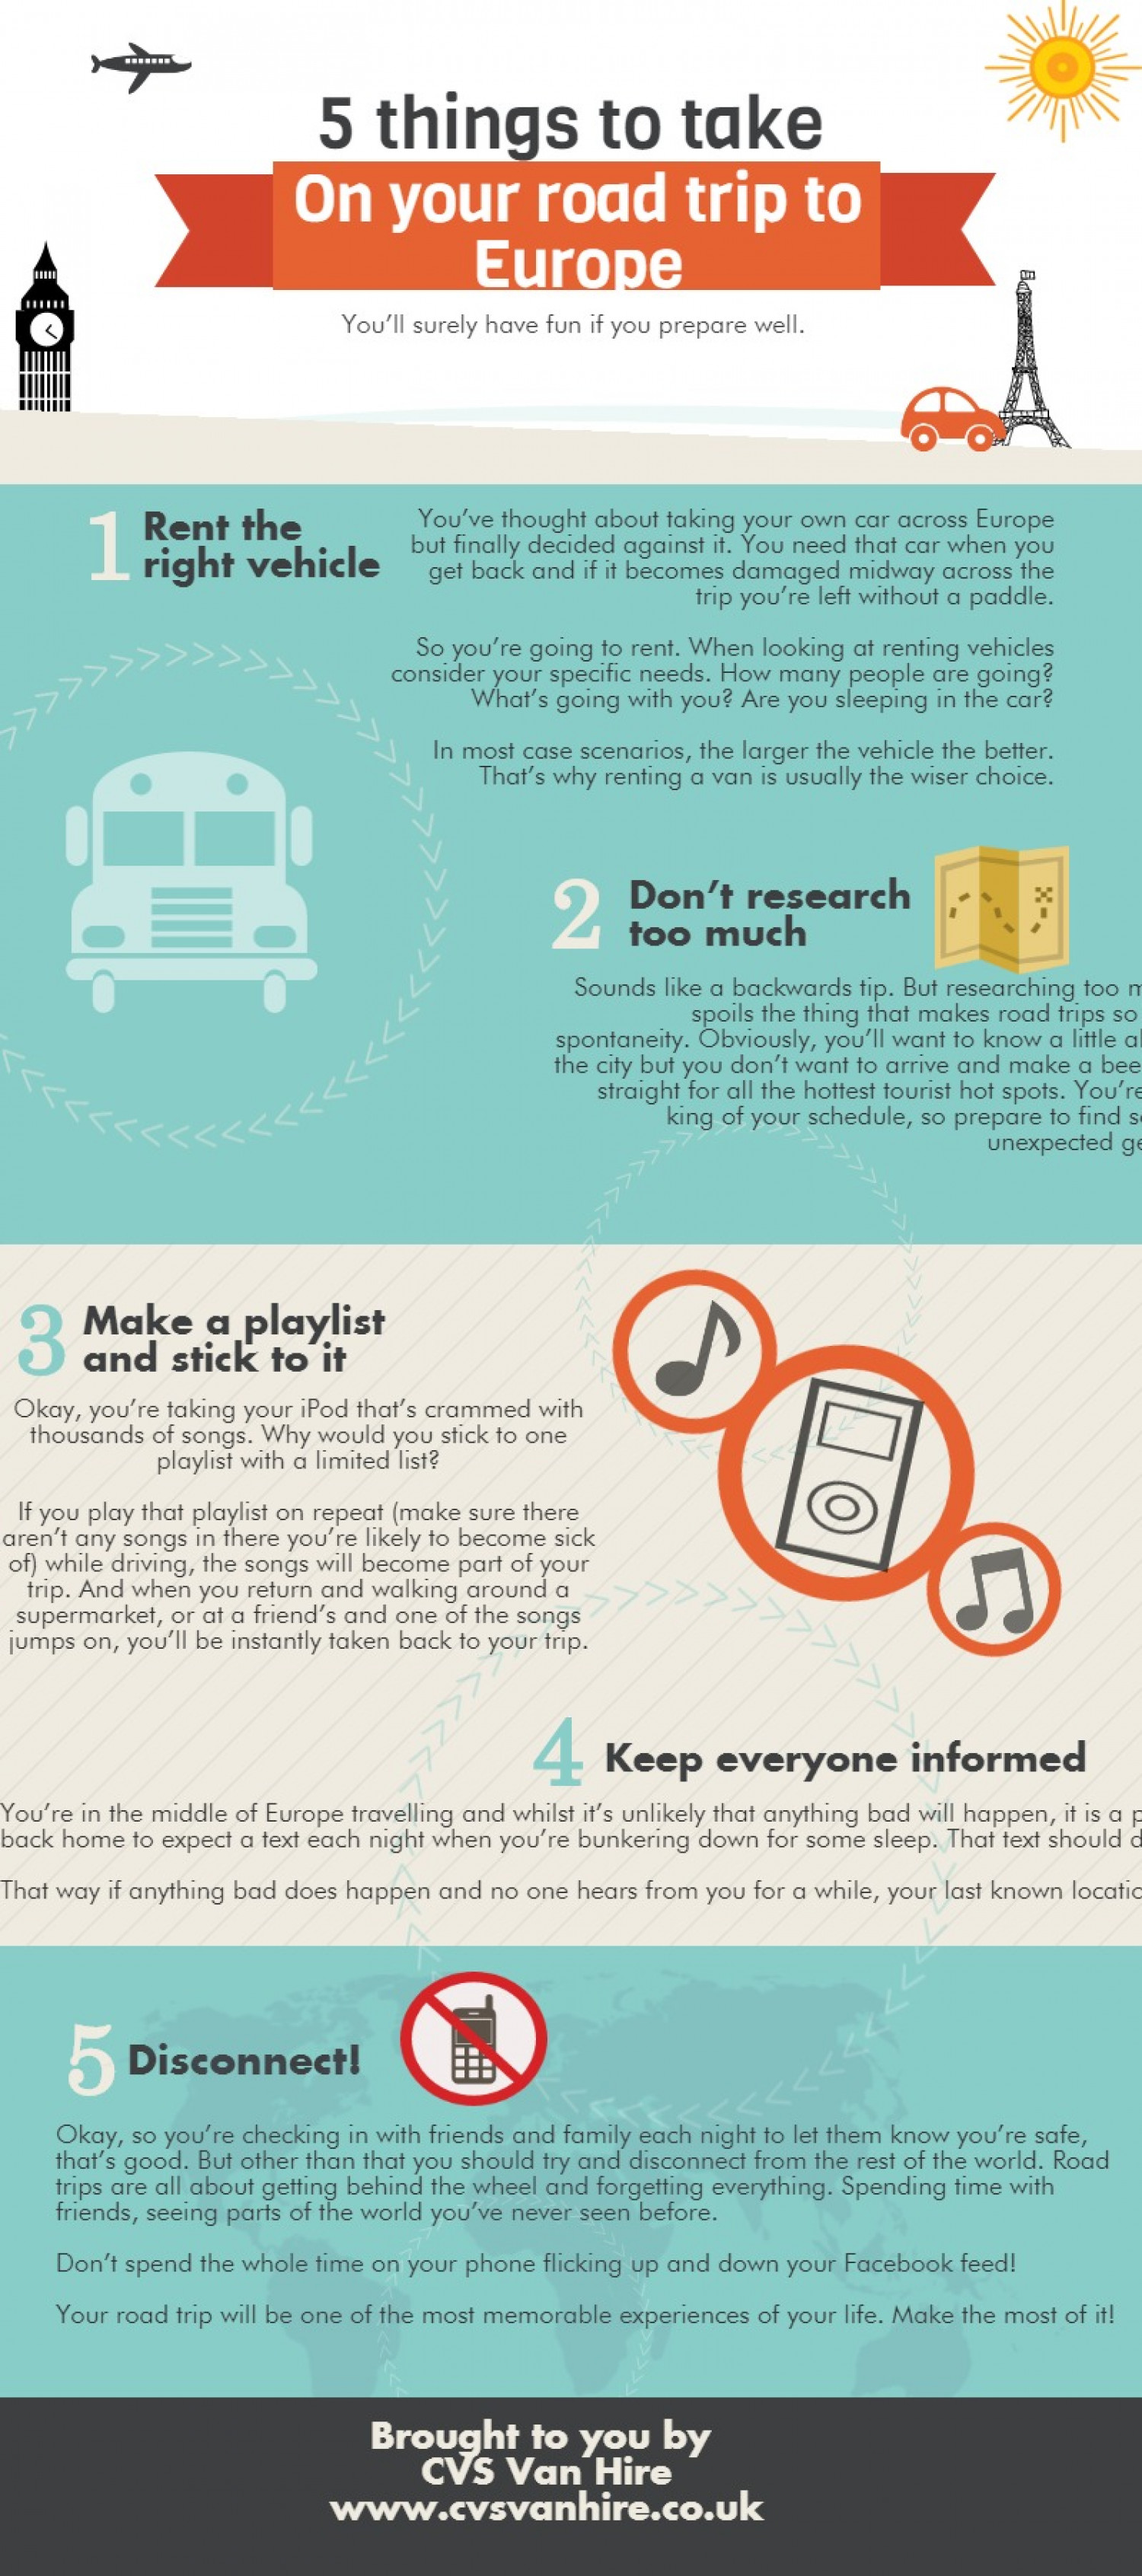 5 things to take on your road trip to Europe Infographic